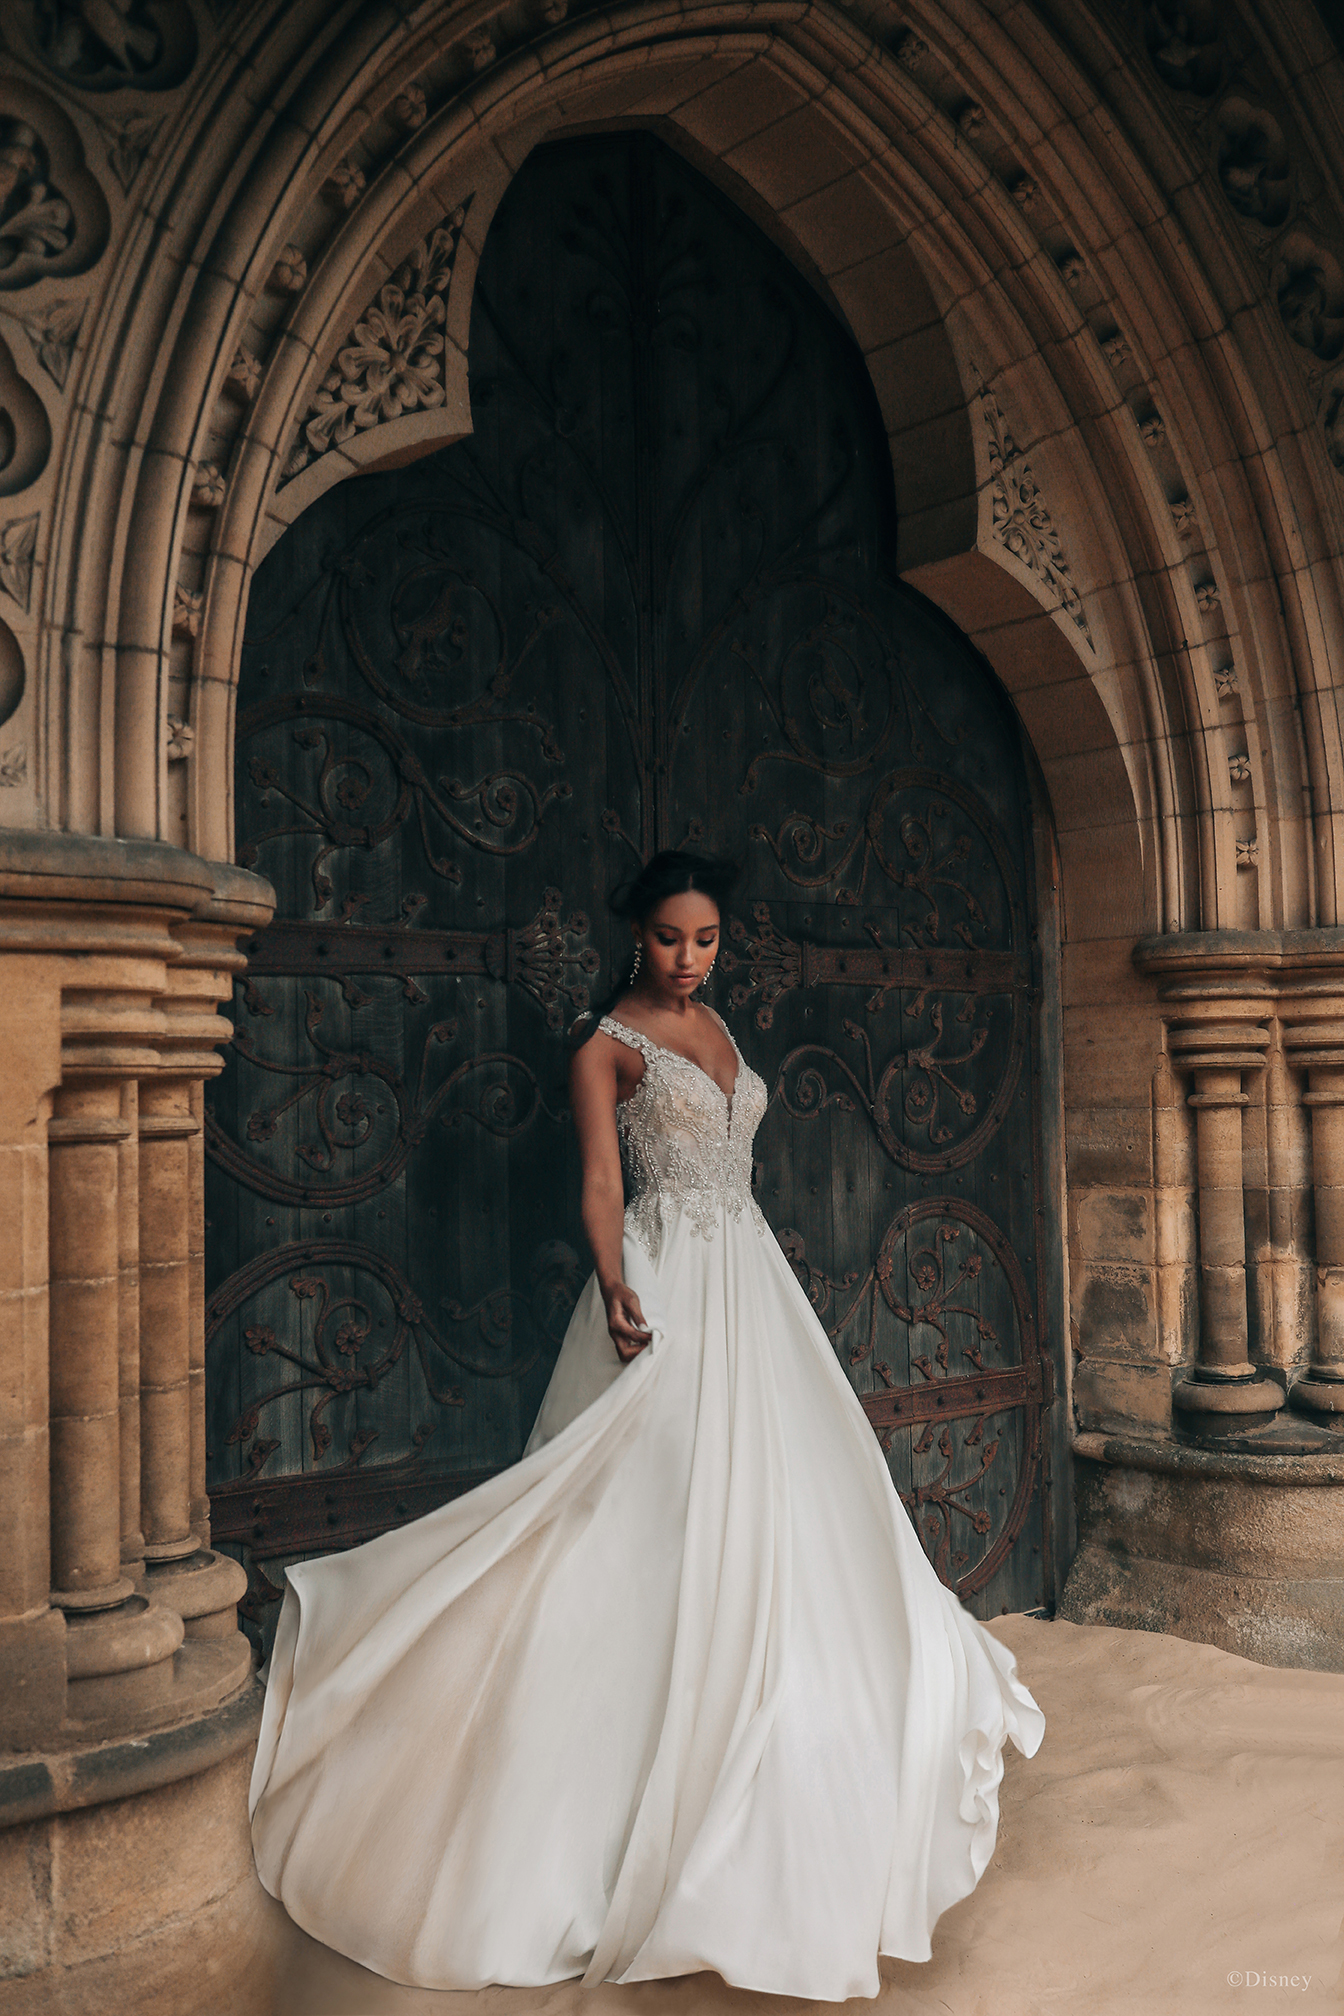 Inspired by Jasmine's adventurous spirit and palatial surroundings, this gown features an intricately beaded bodice, reminiscent of the palace's architecture. The gradual illusion back provides balance to the lightweight 'airy' crepe chiffon skirt, which features hidden pockets!